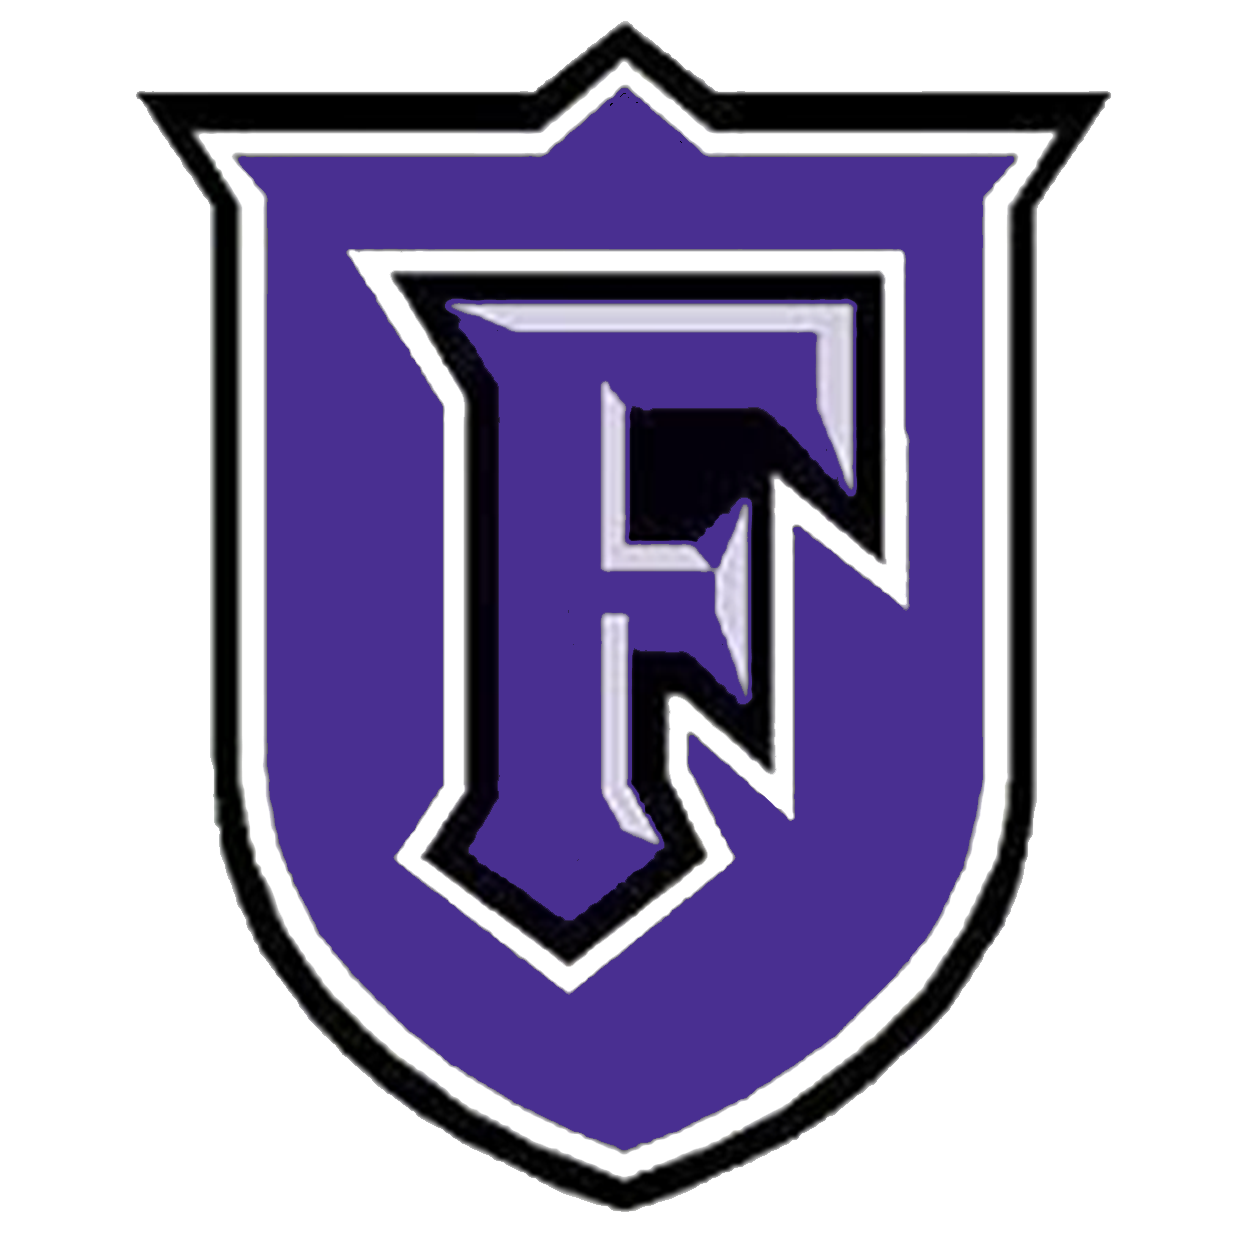 Foothills Christian